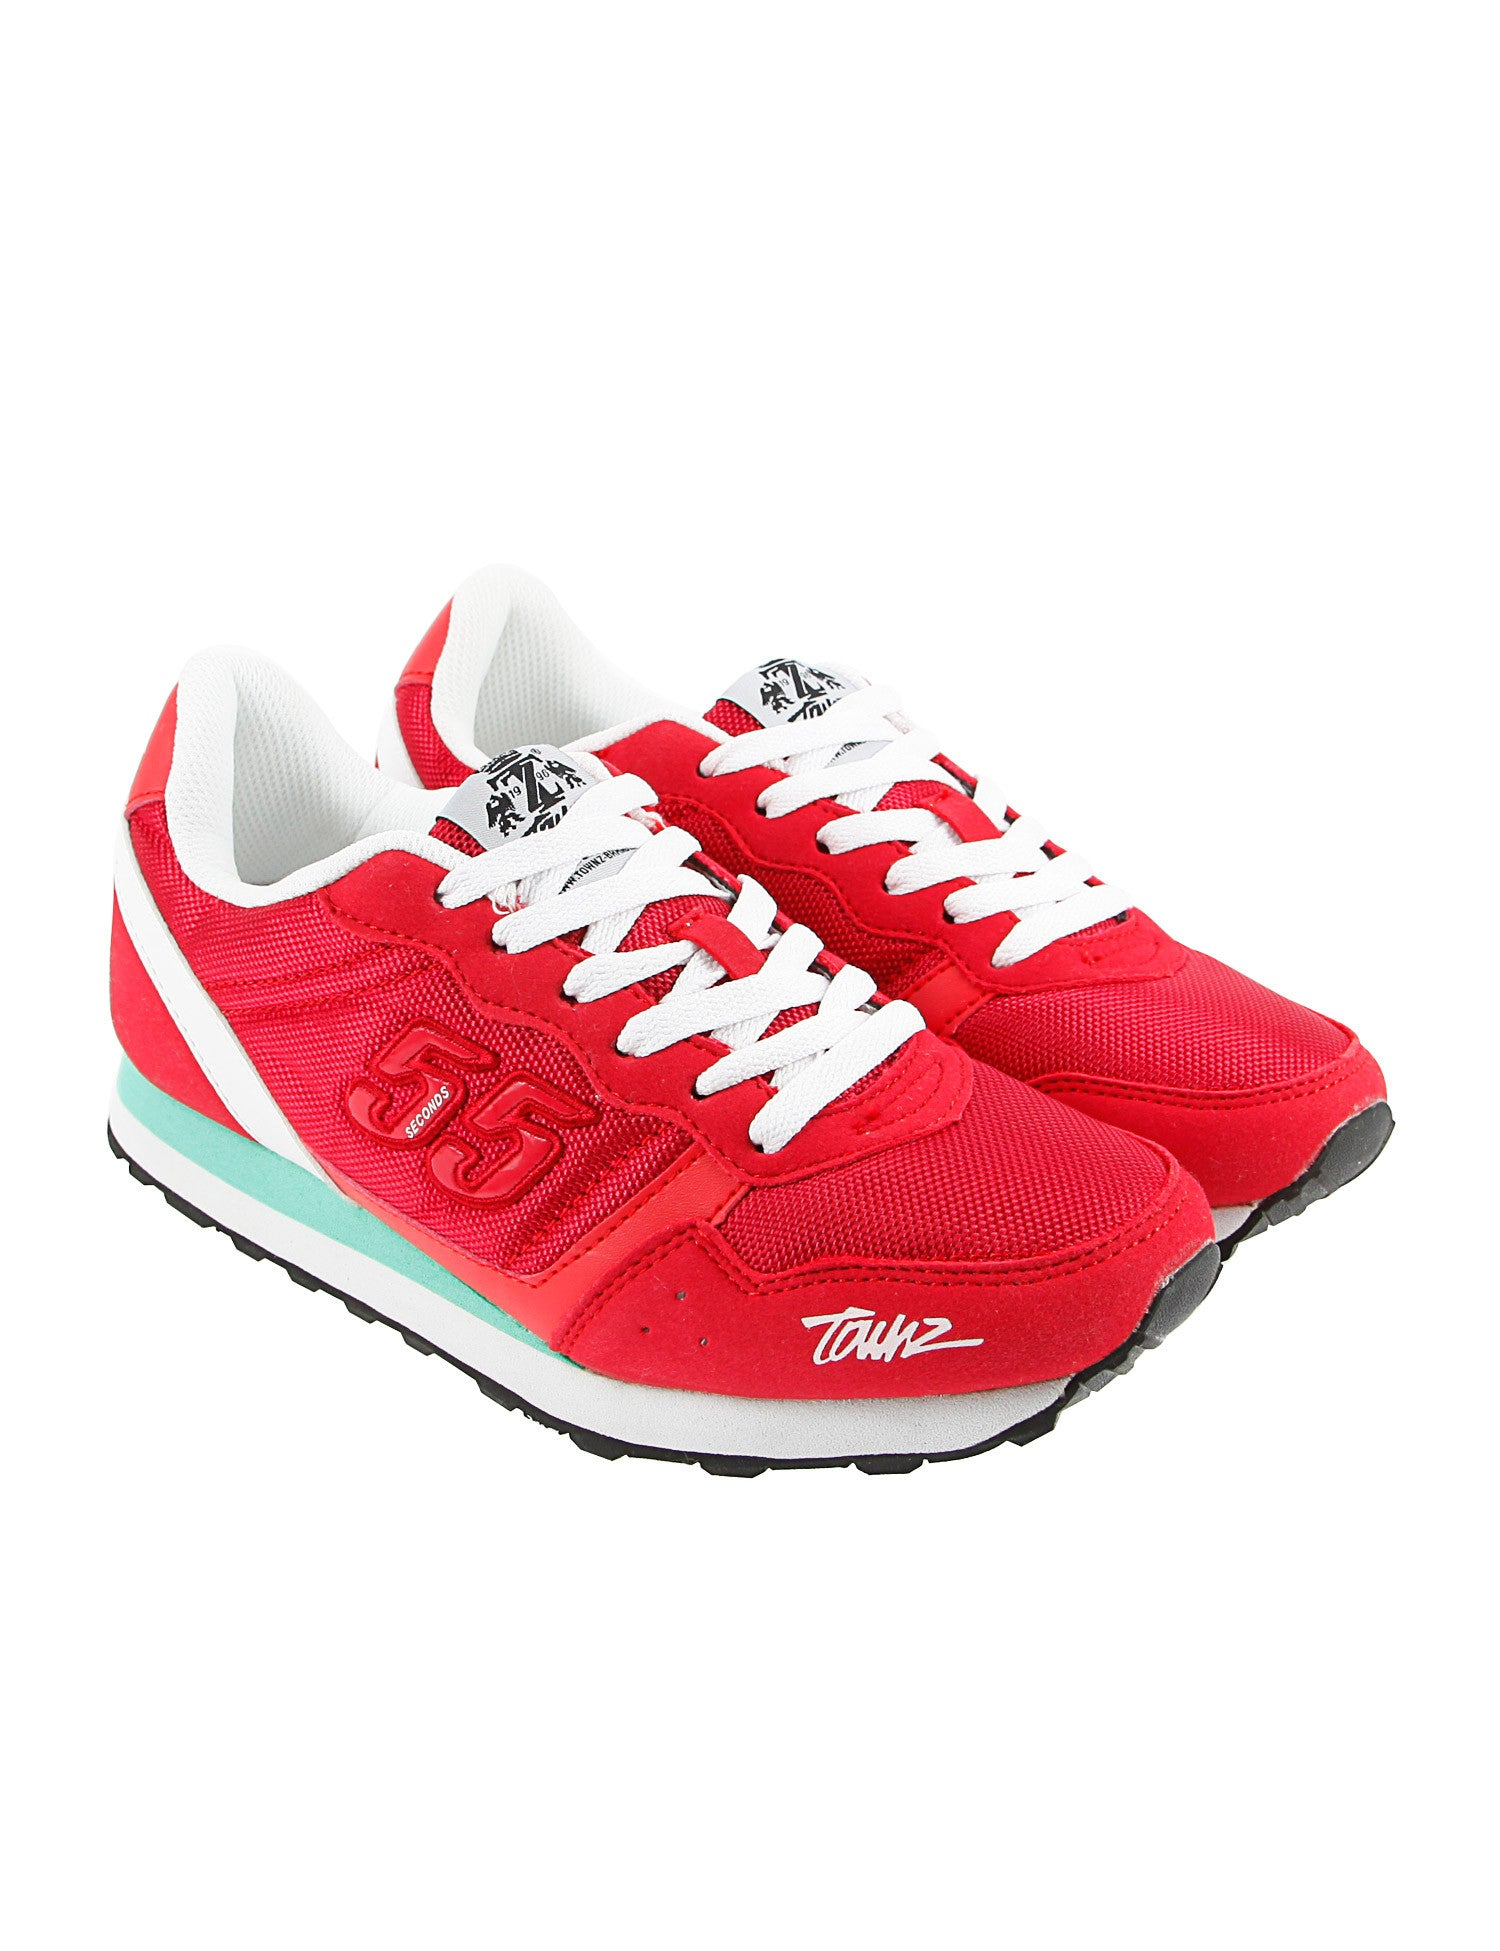 Townz Shoes G983 Red